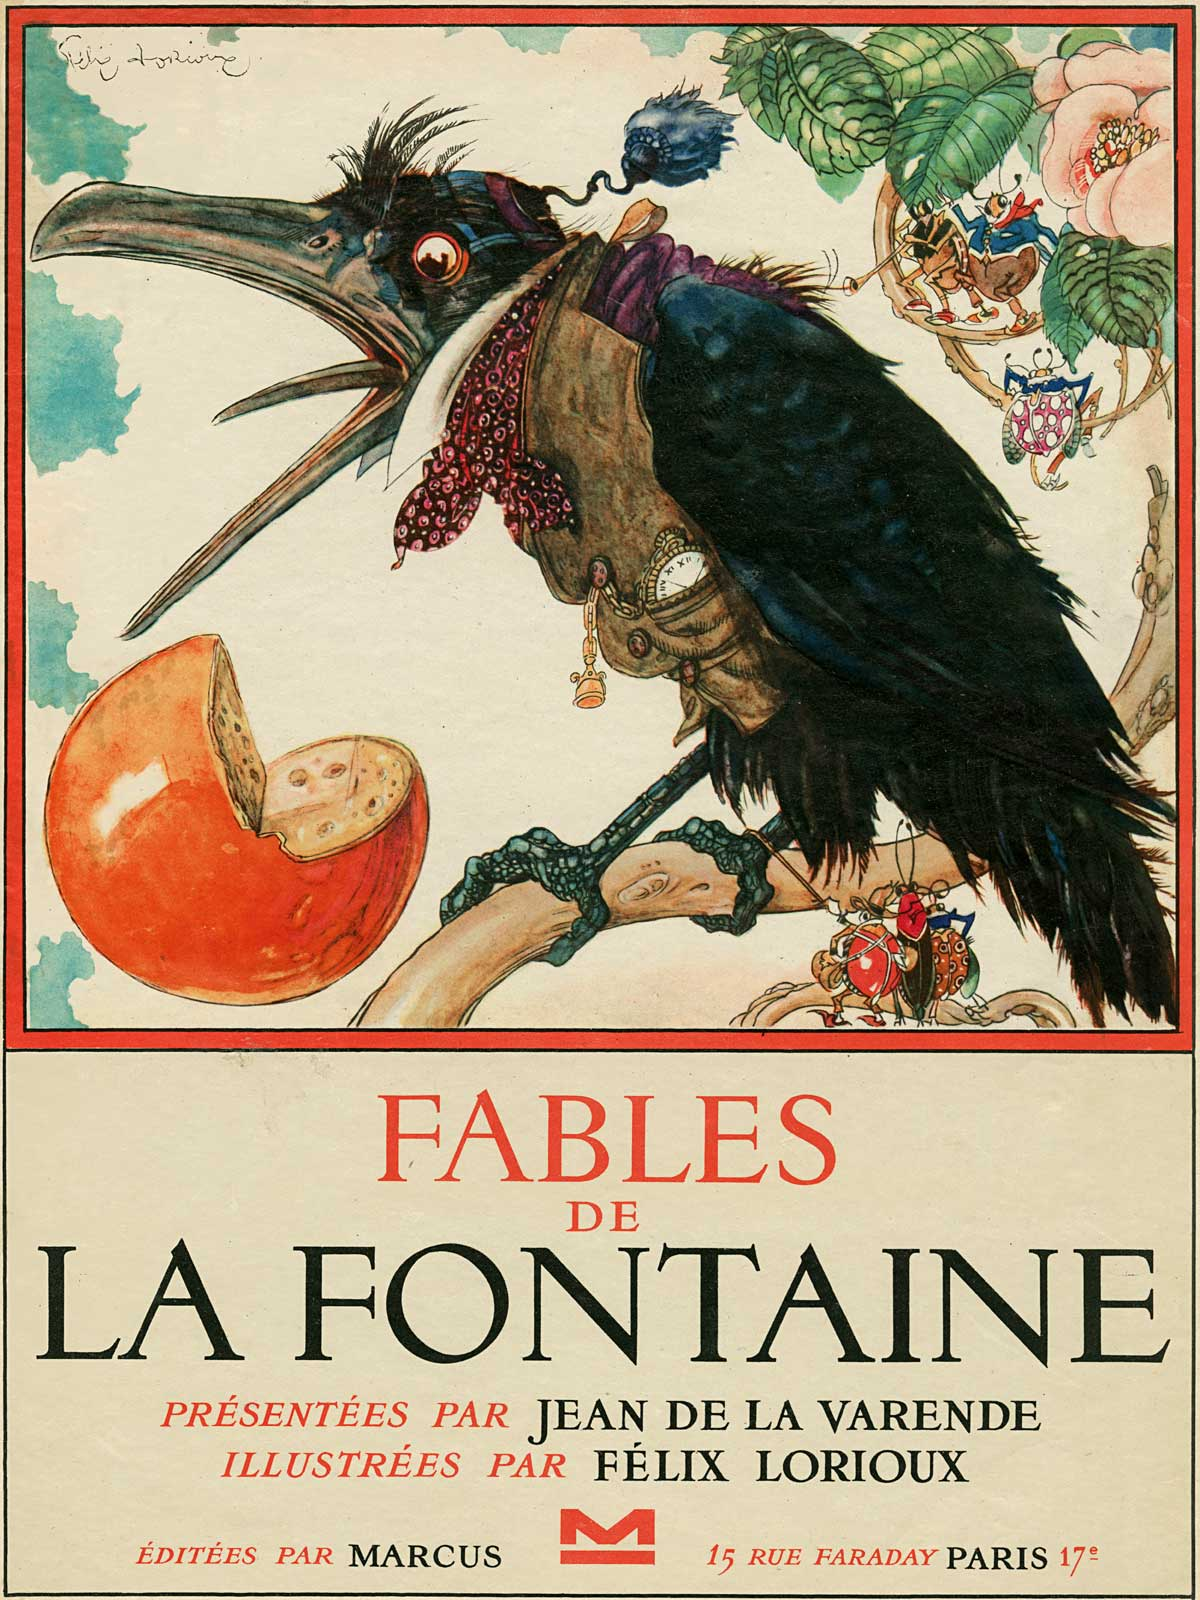 the work of la fontaine